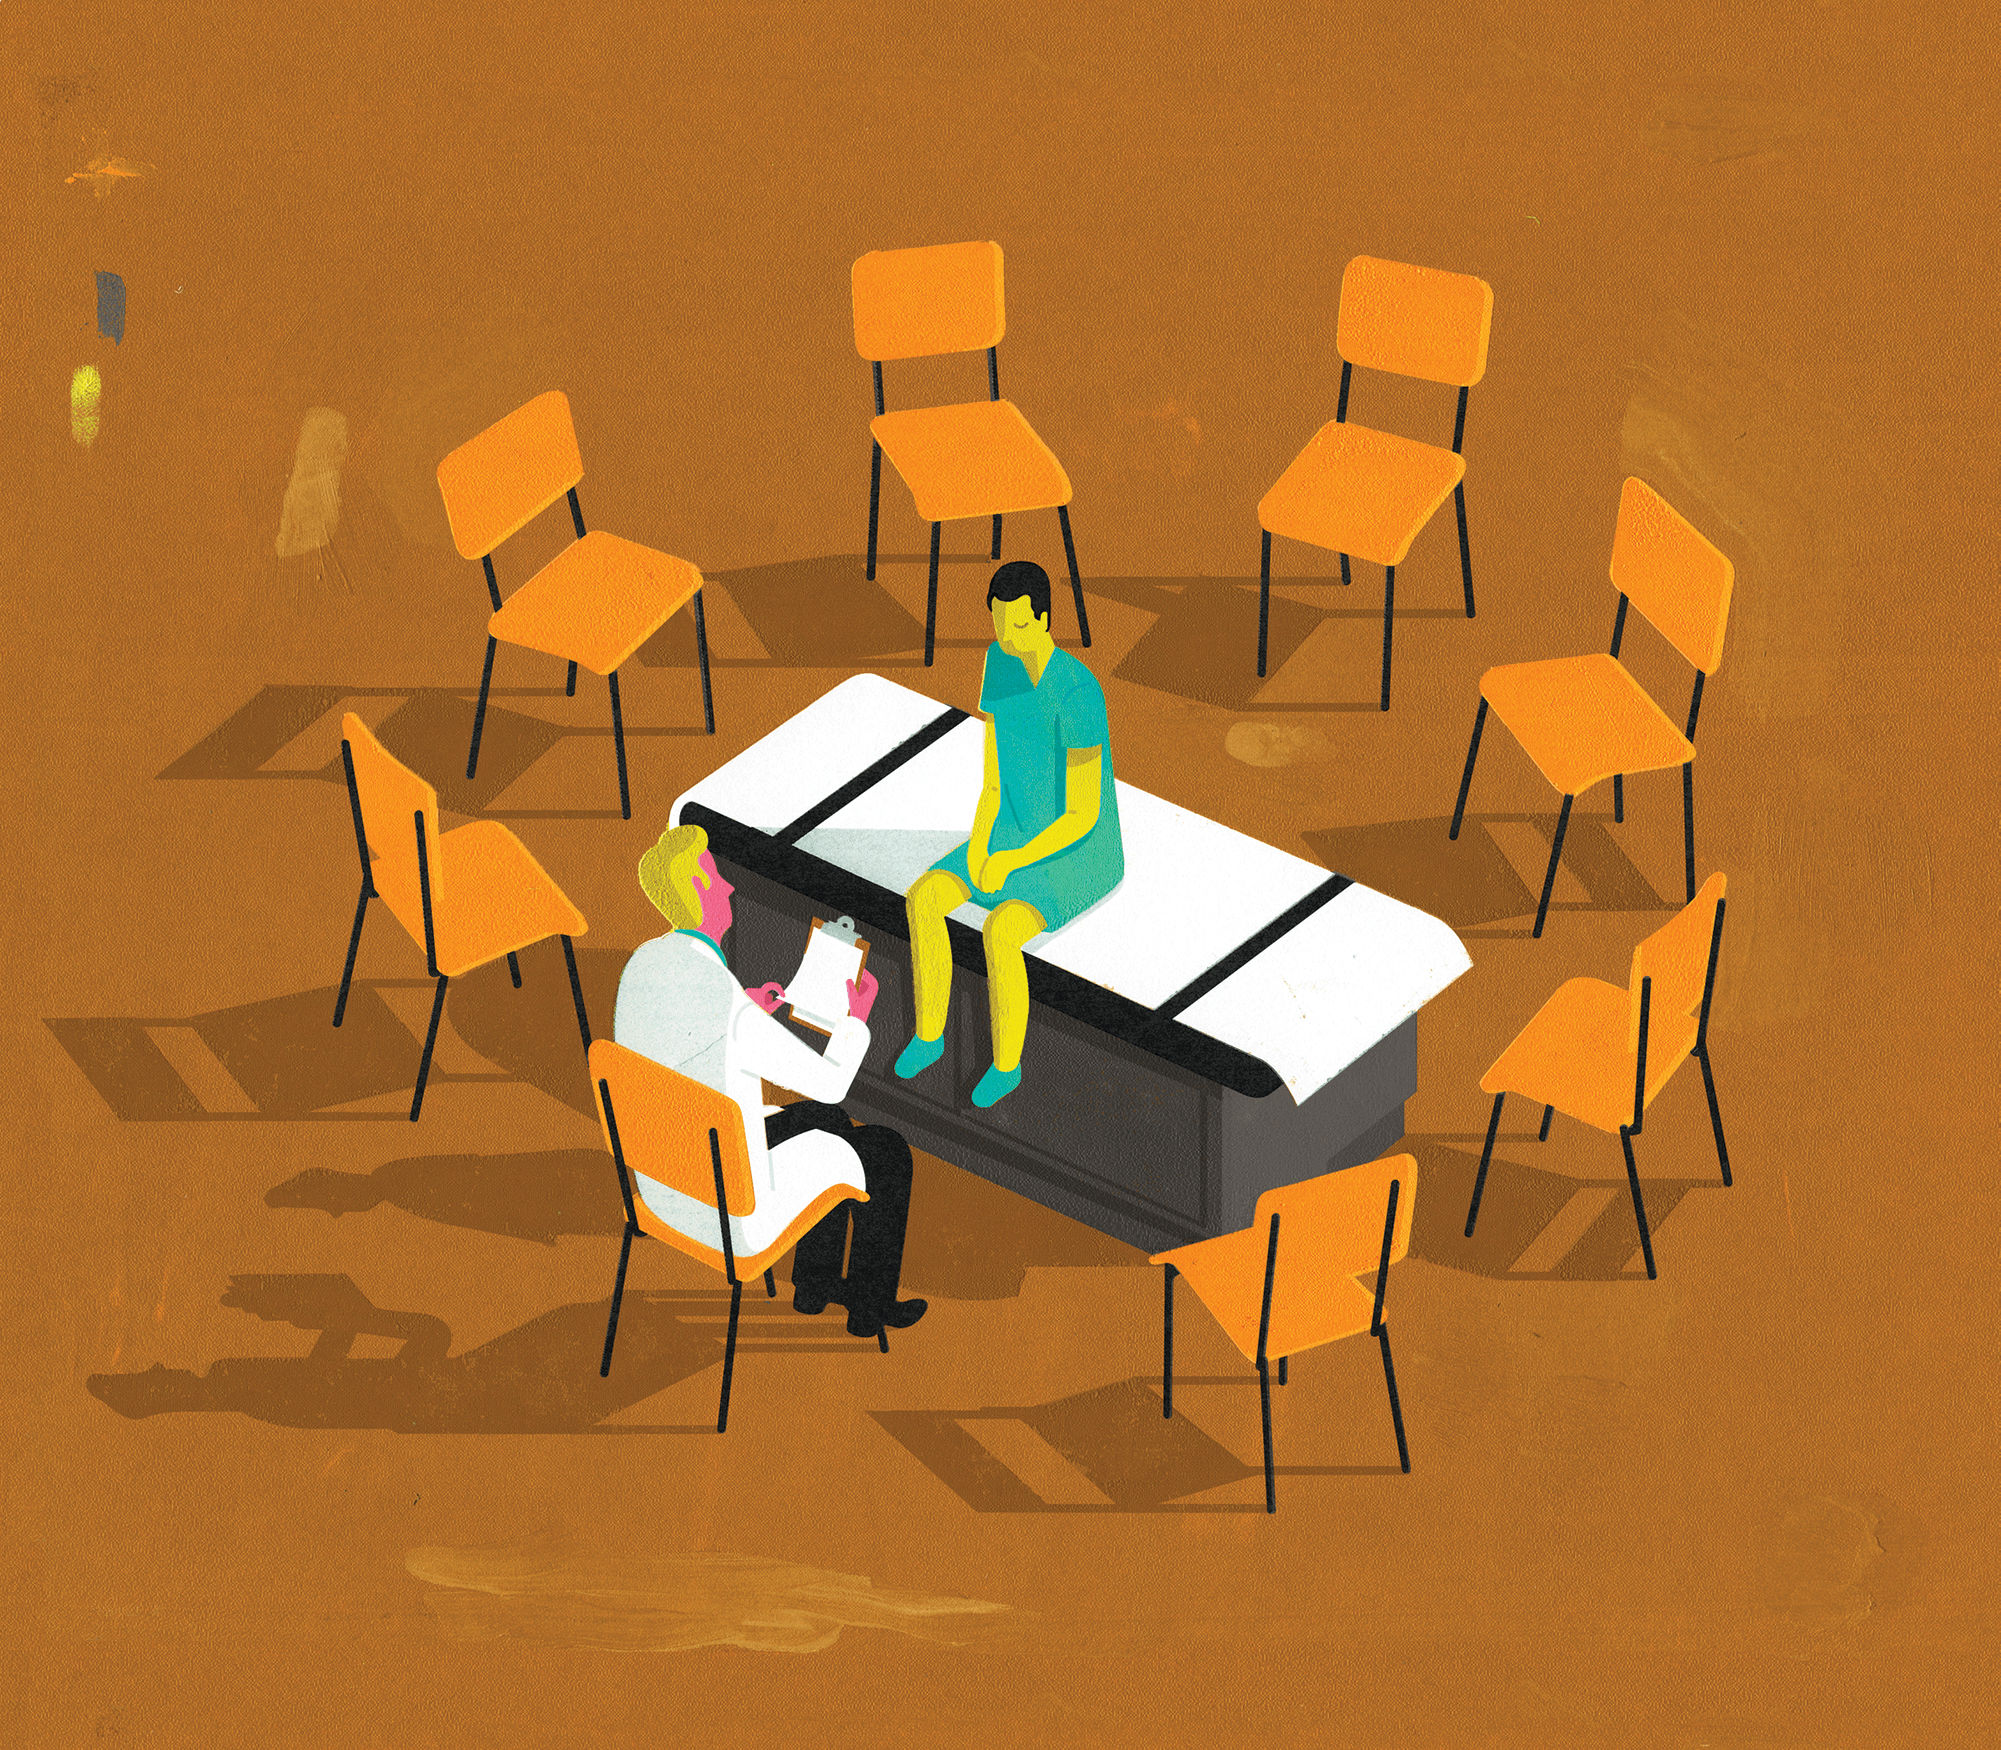 Illustration of a circle of chairs, one occupied by a doctor, and the rest empty. A patient sits on a bench in the centre, facing the doctor.